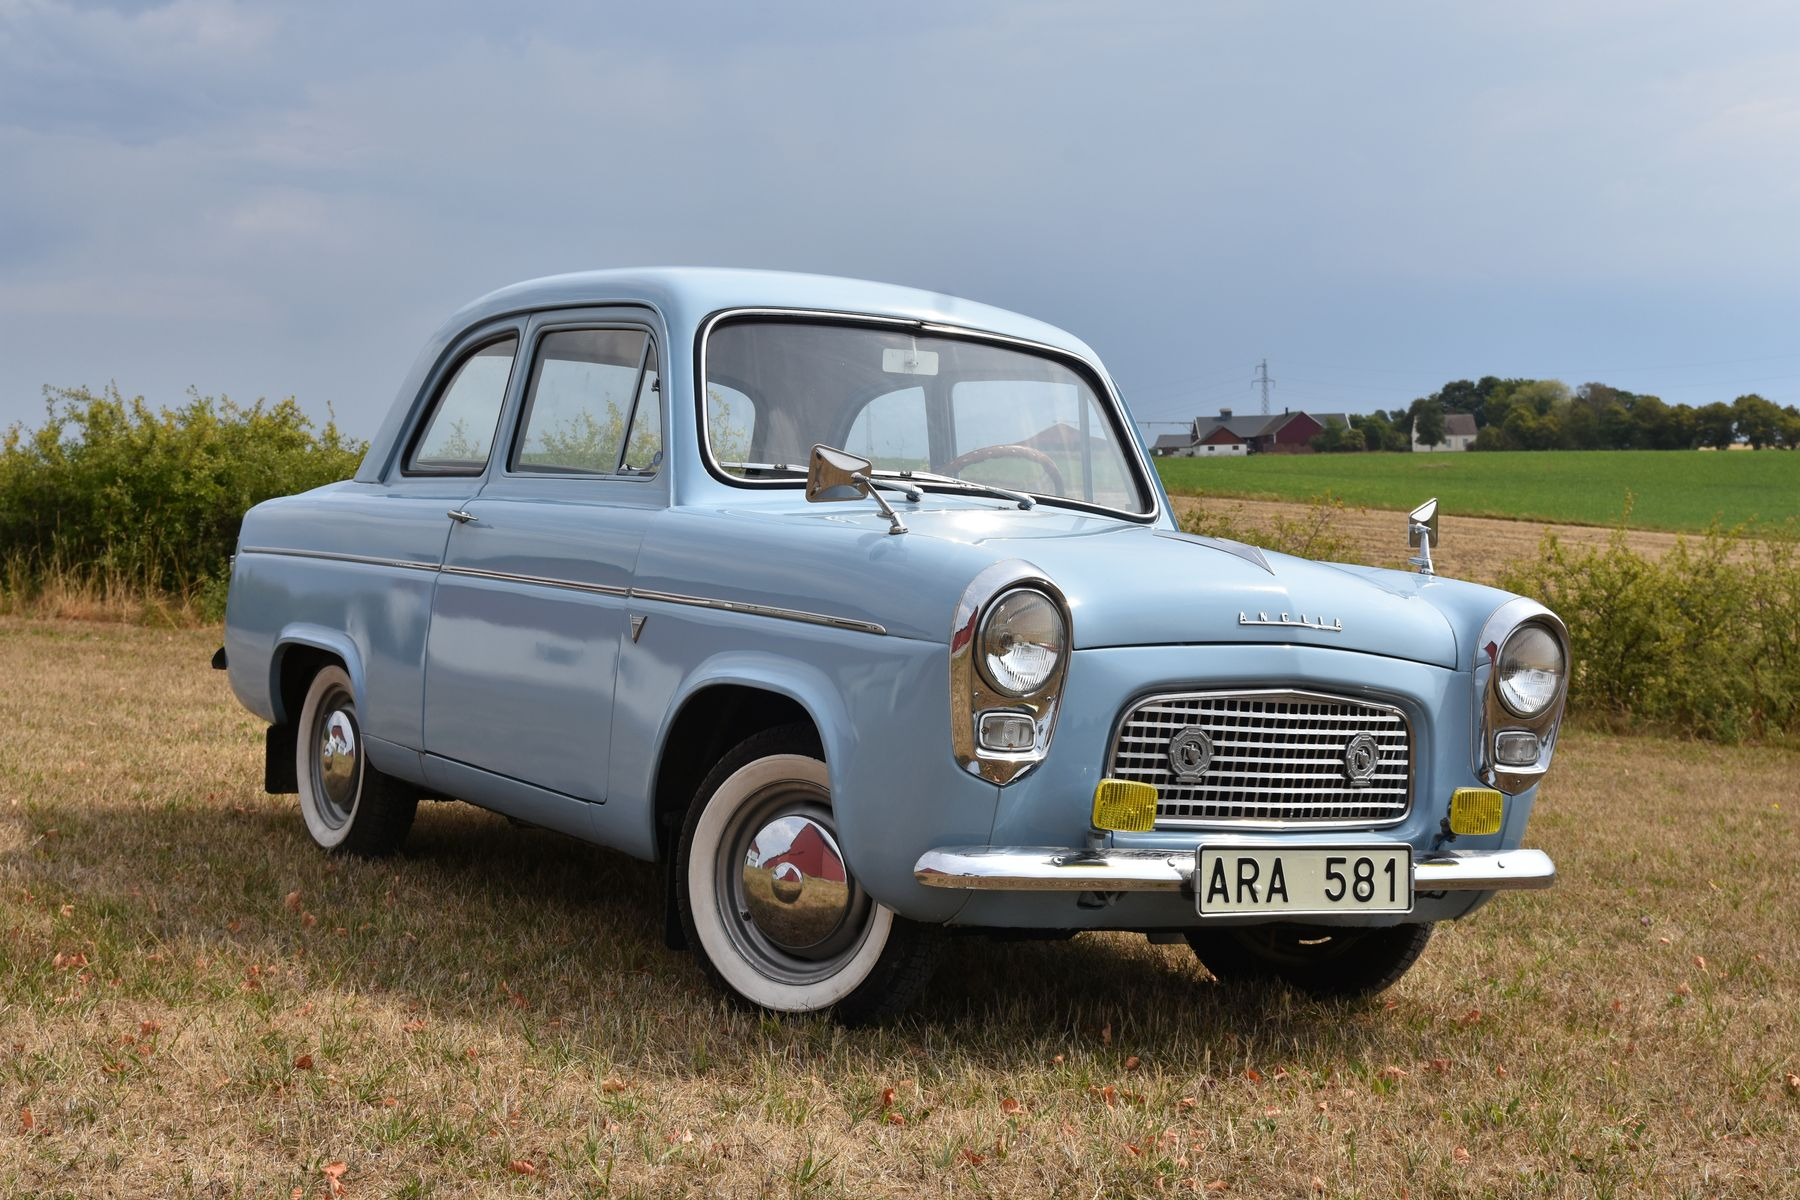 ford anglia 4 cylinder 1958 on bilweb auctions. Black Bedroom Furniture Sets. Home Design Ideas